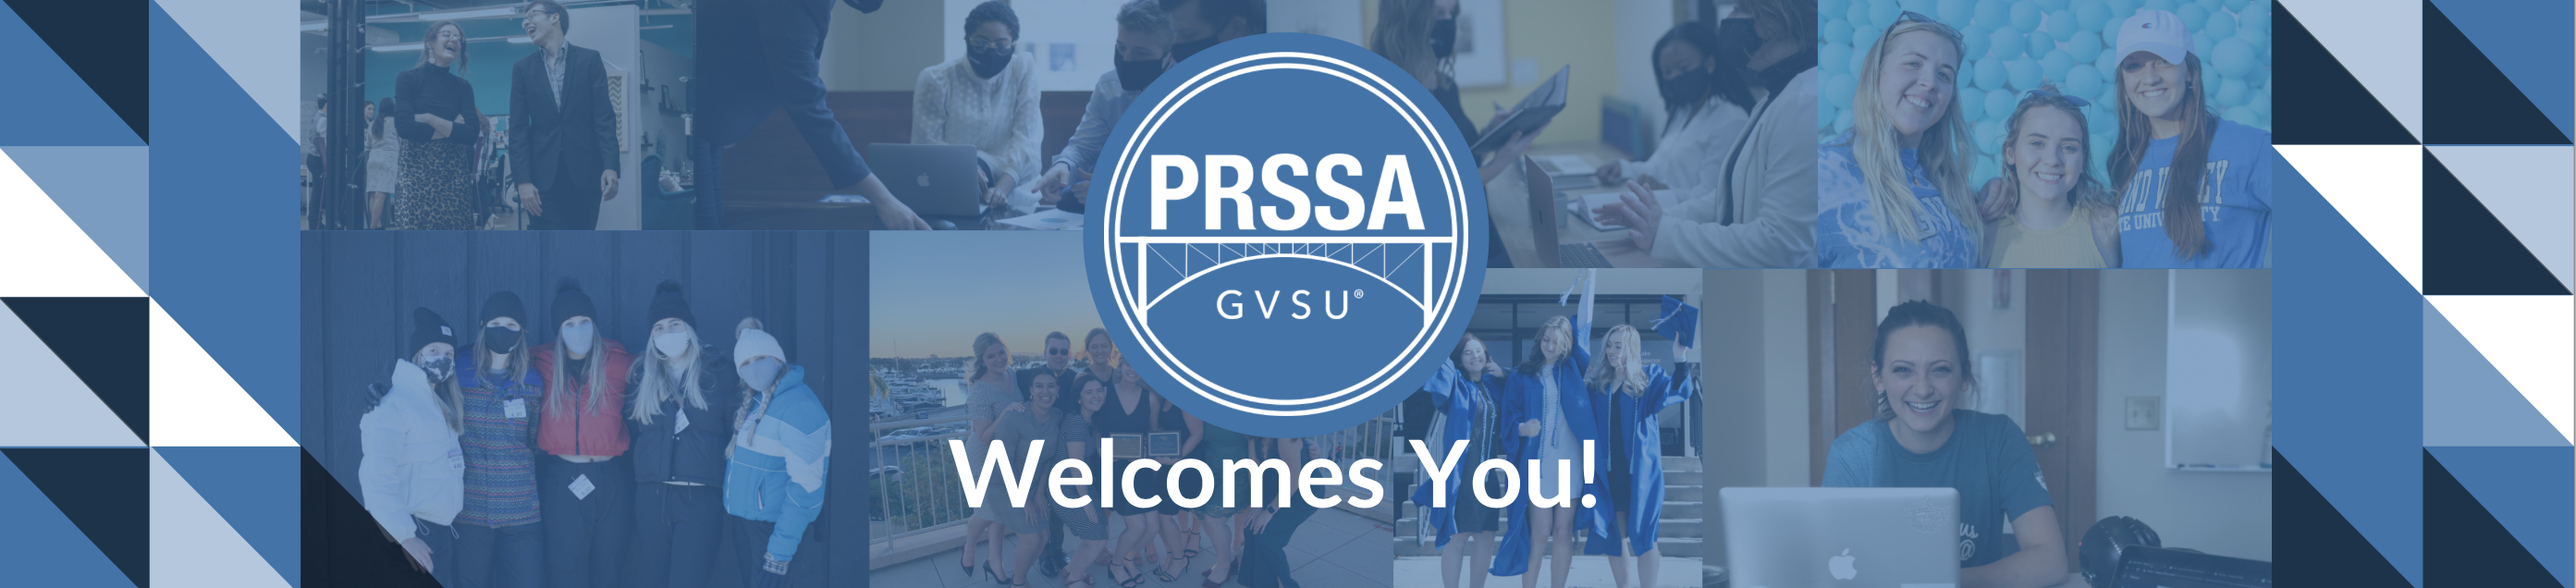 GV PRSSA Welcomes You